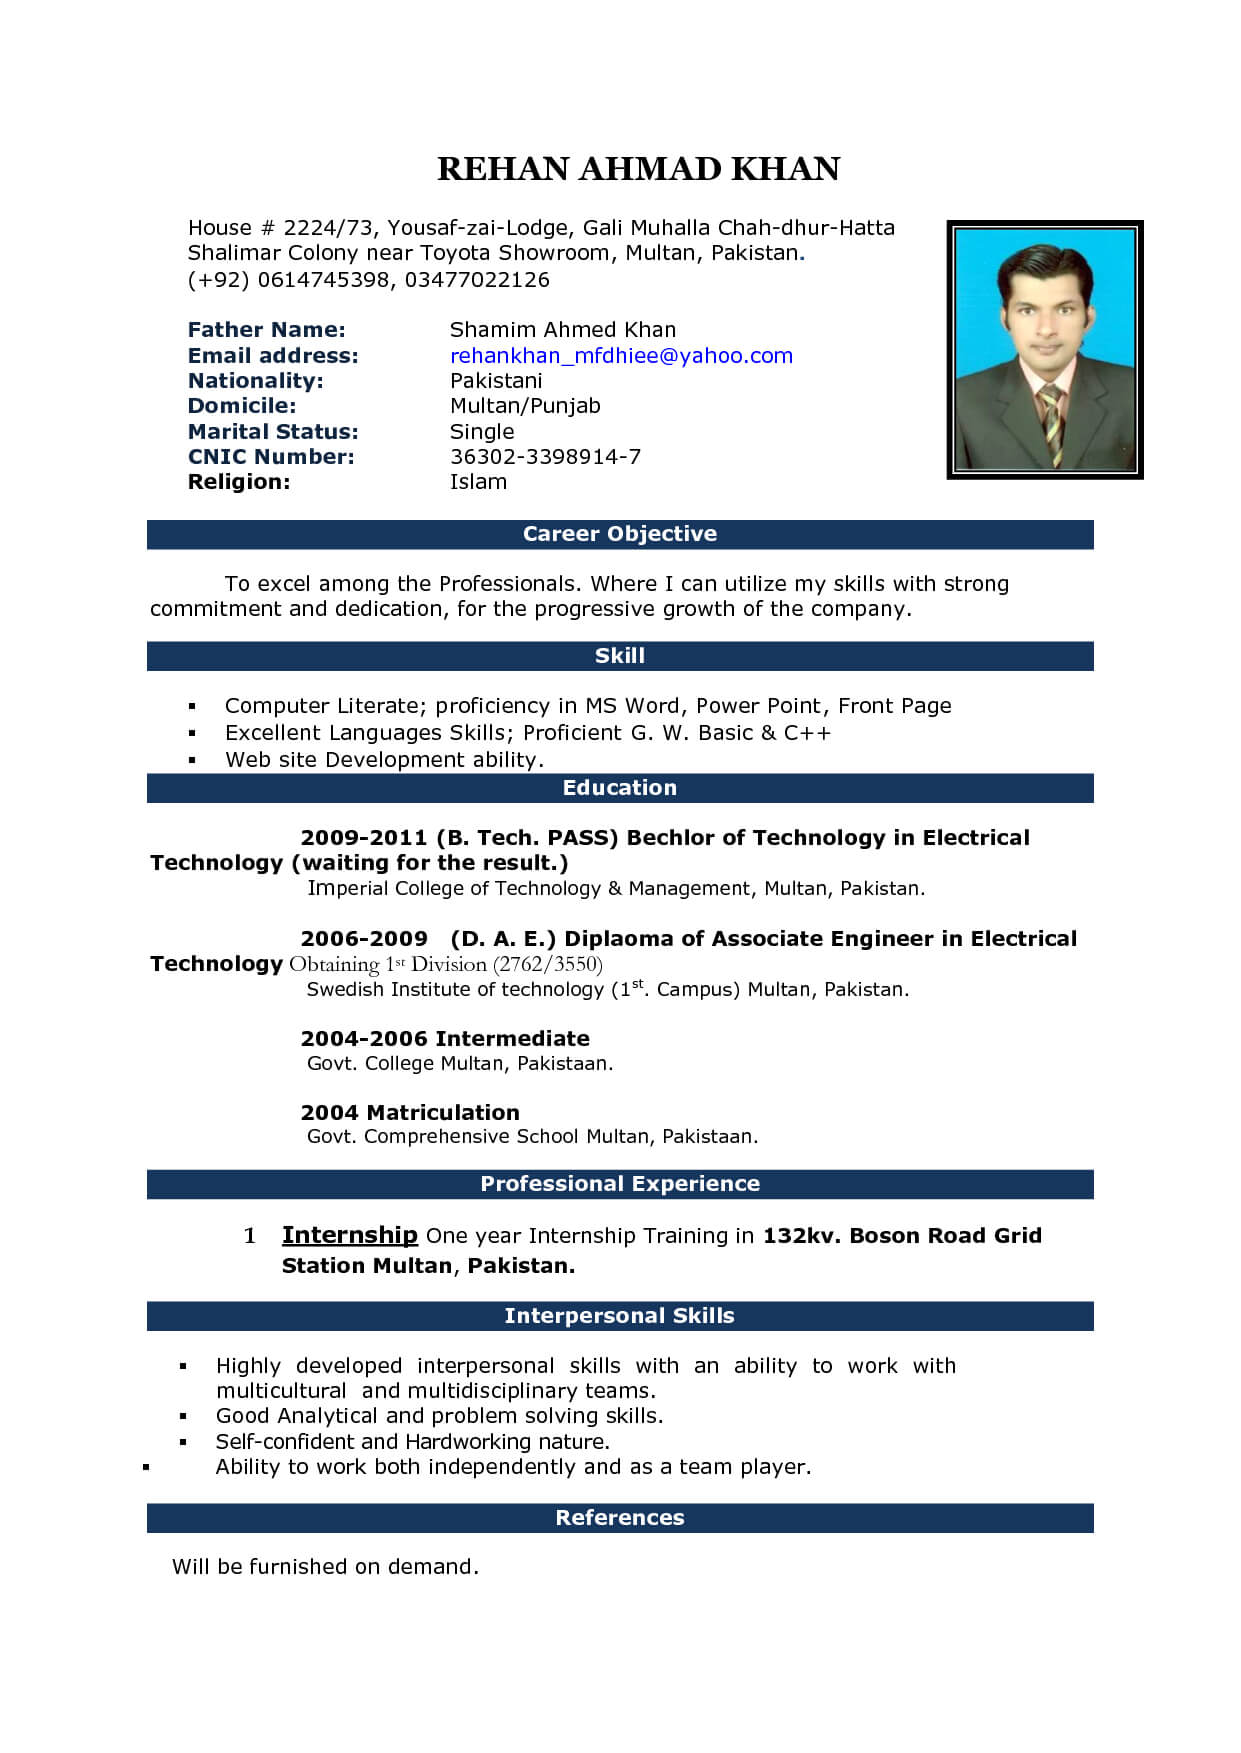 Image Result For Cv Format In Ms Word 2007 Free Download For Resume Templates Word 2007